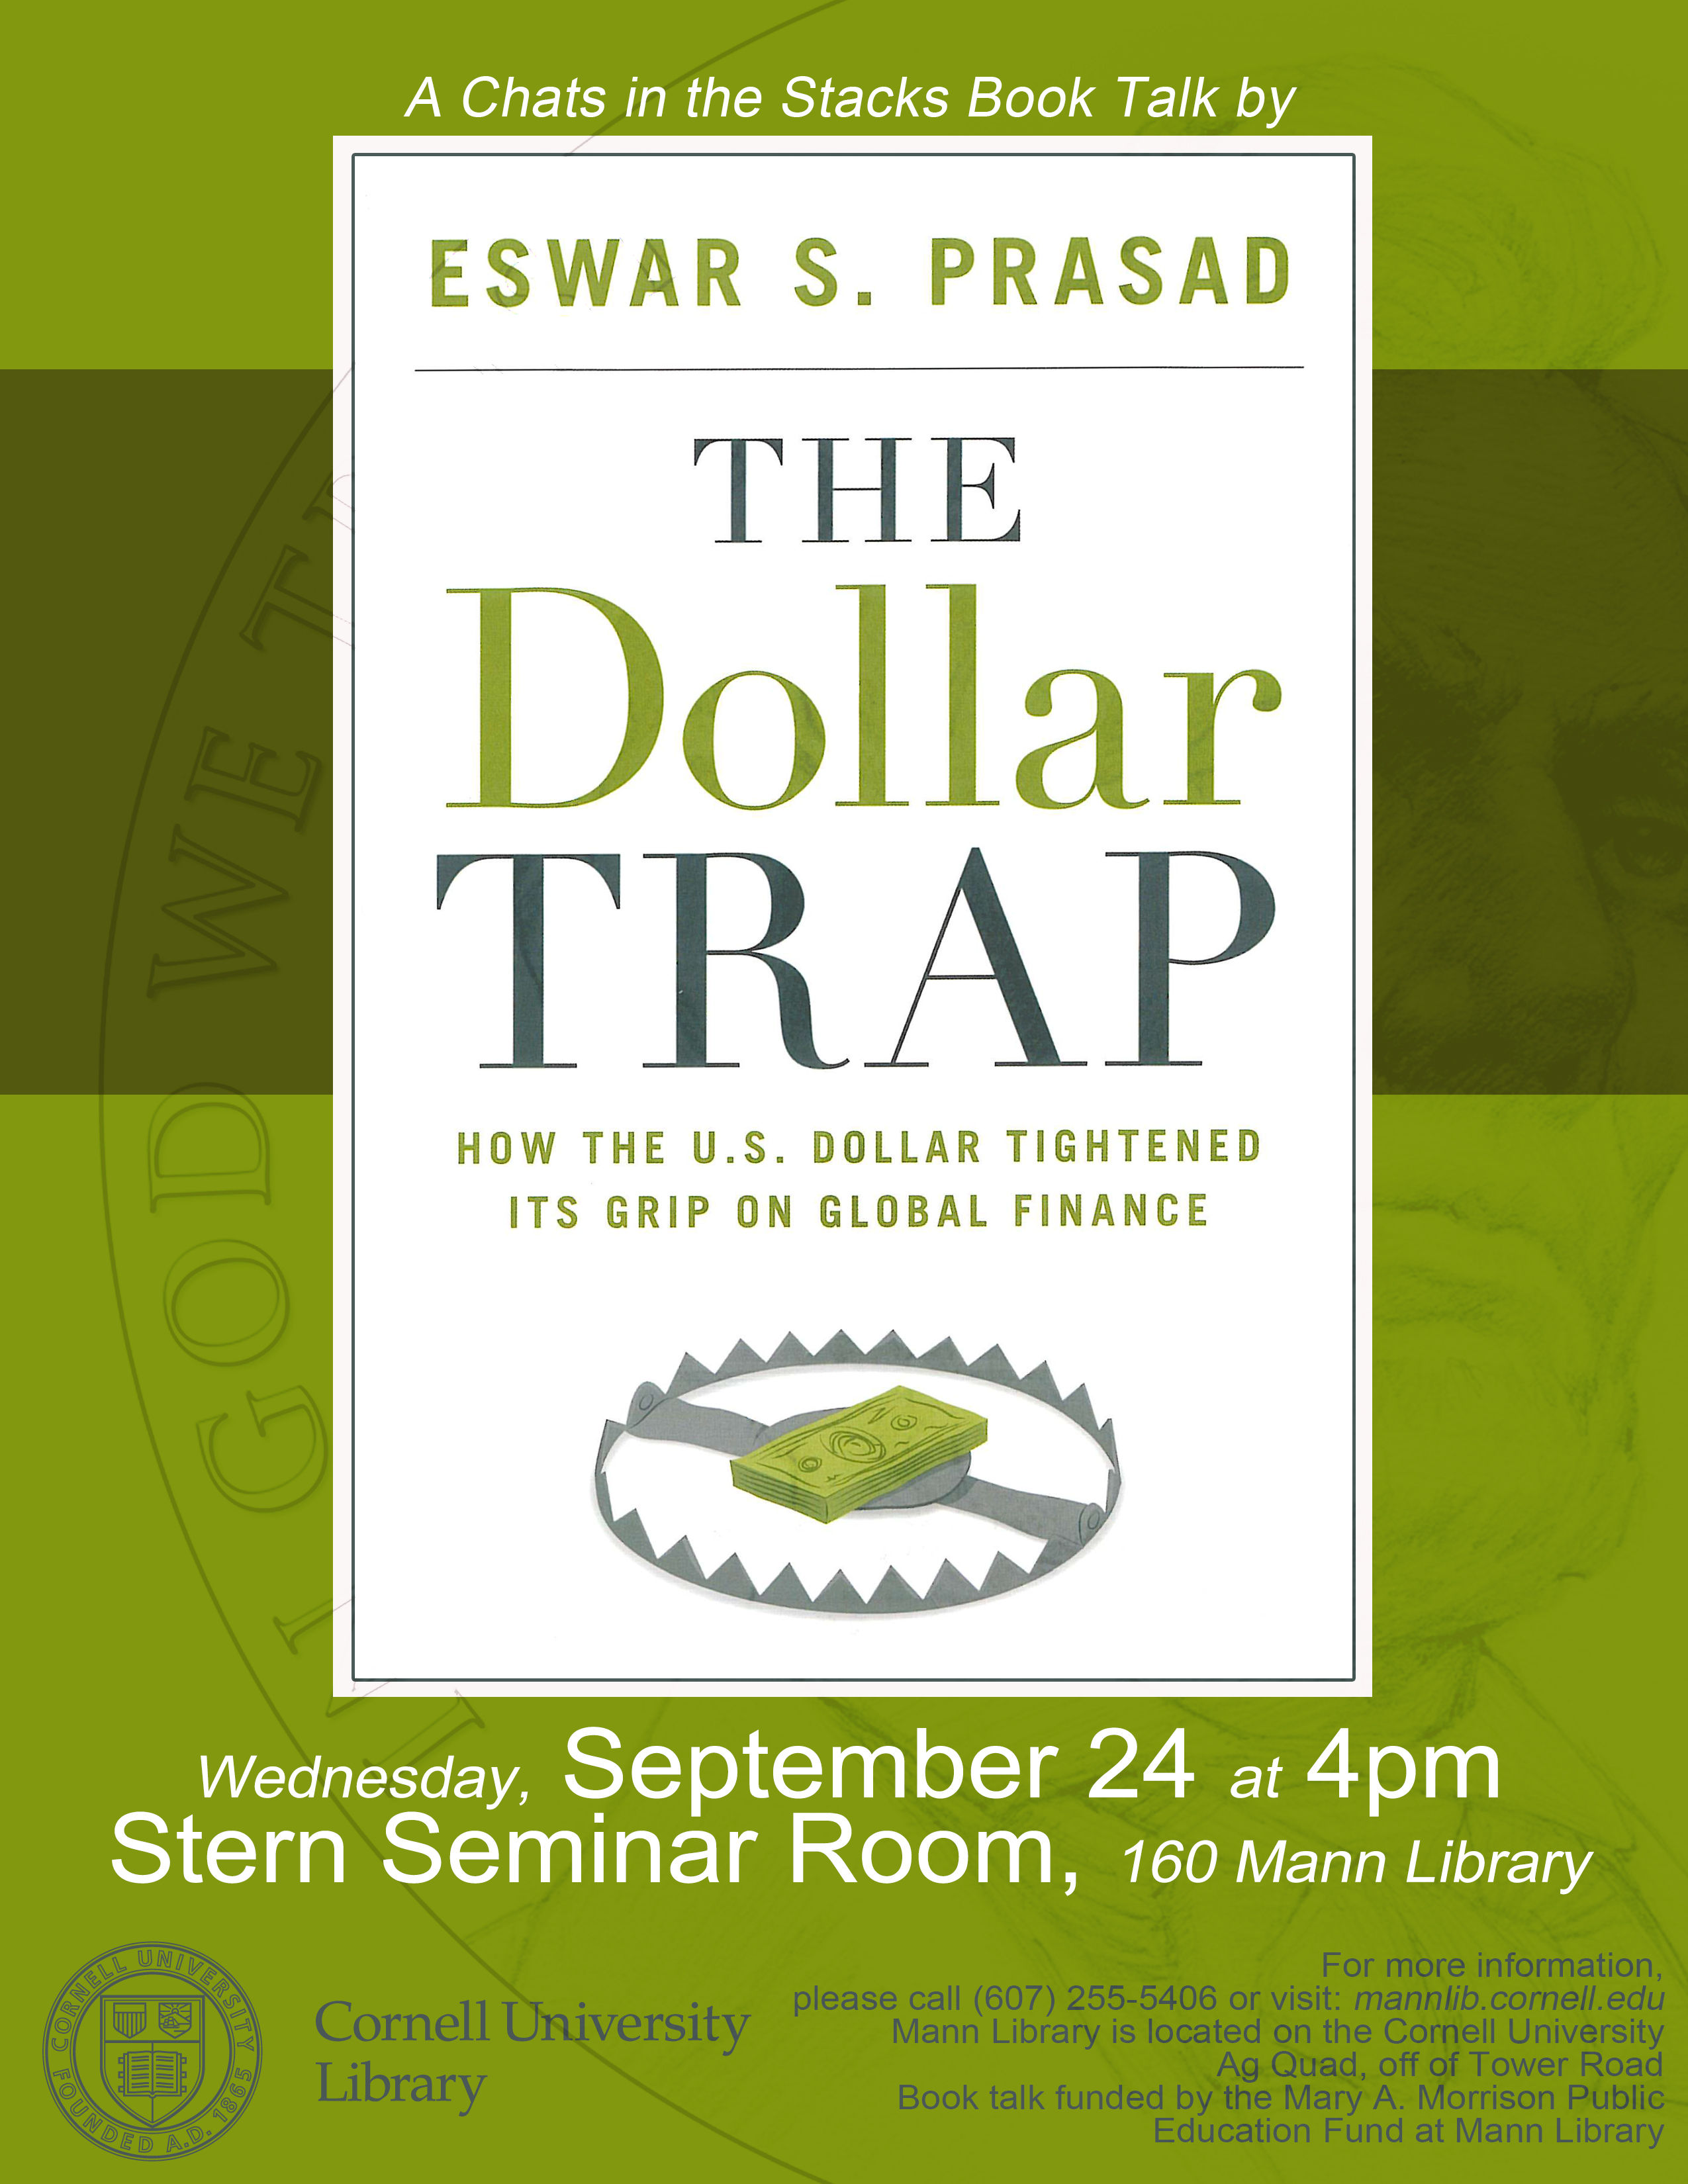 Book Talk: The Dollar Trap--How the U.S. Dollar Tightened Its Grip on Global Finance